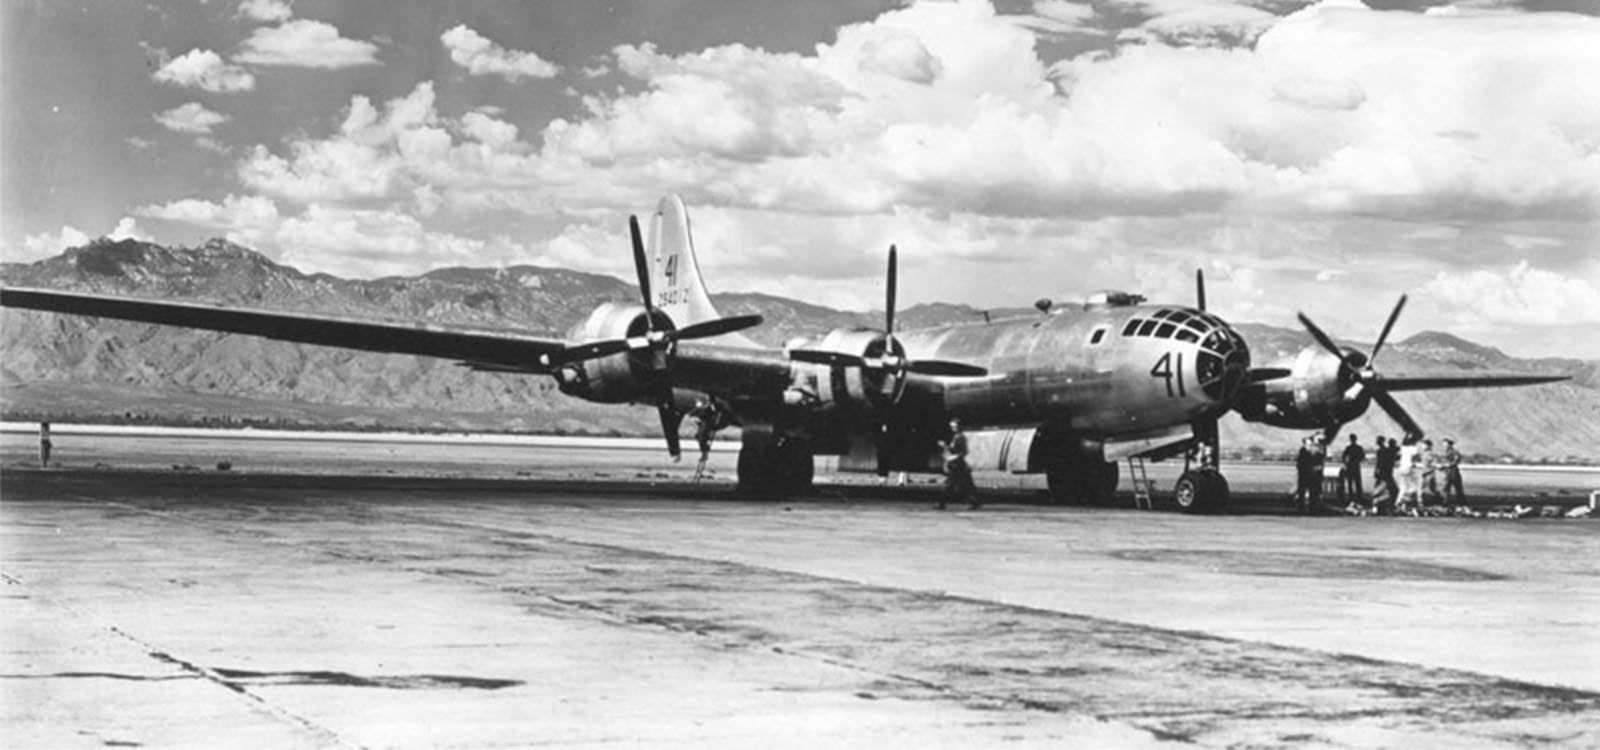 B-29 Superfortress, 1944